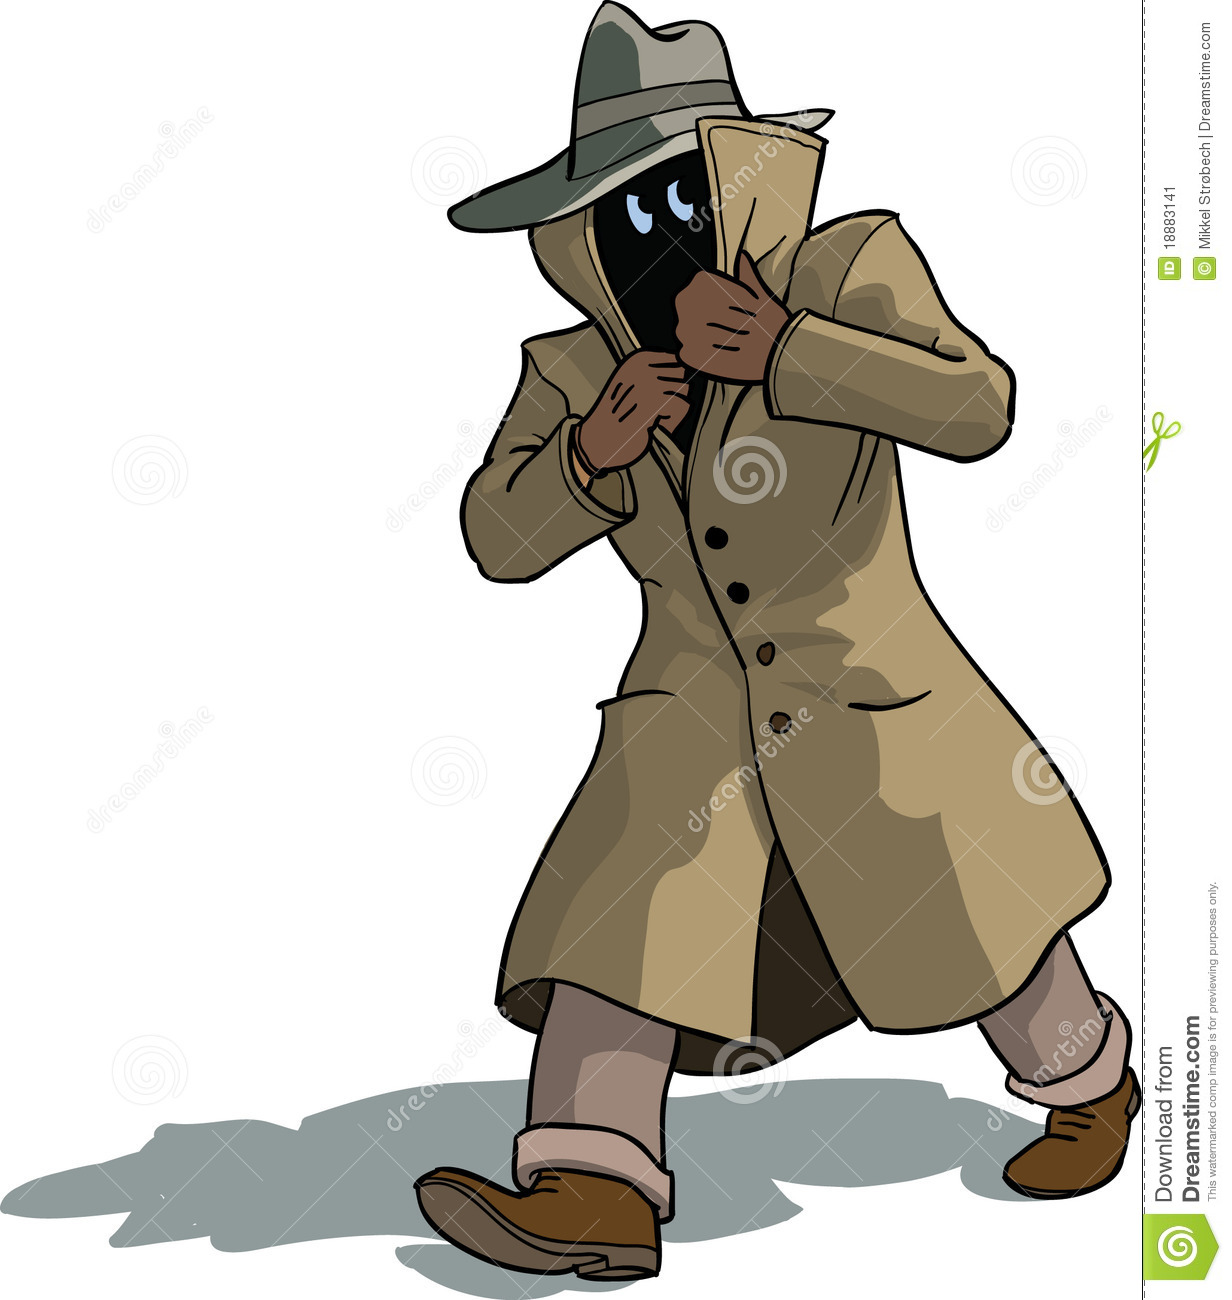 Man in cottoncoat fleeing and appering suspicious.